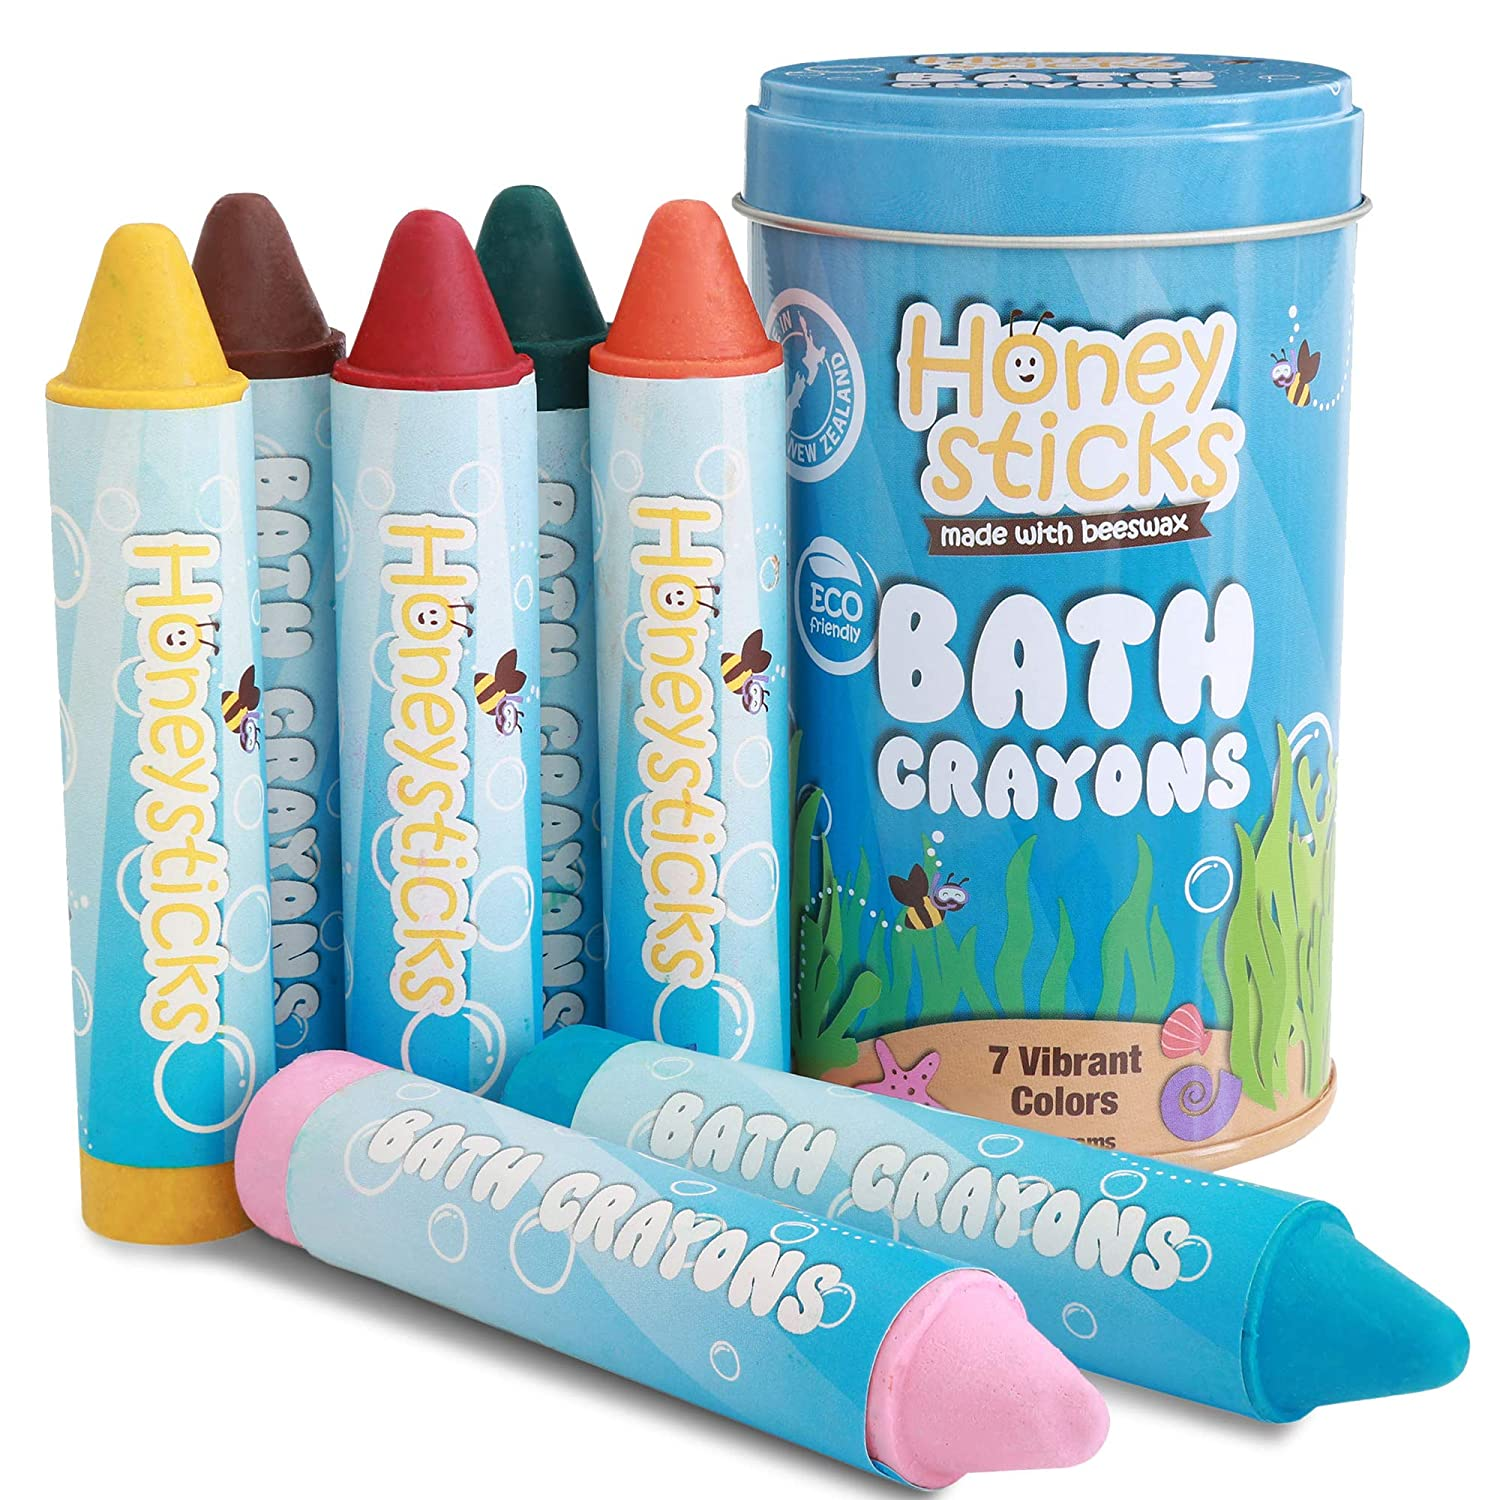 Honeysticks Beeswax Bath Tub Crayons Toddlers & Kids, Non-Toxic, Washable & Easy Clean Up, Water Soluble Bath-Time Fun, Food Grade Pigments, Handmade in Zealand (7 Pack)